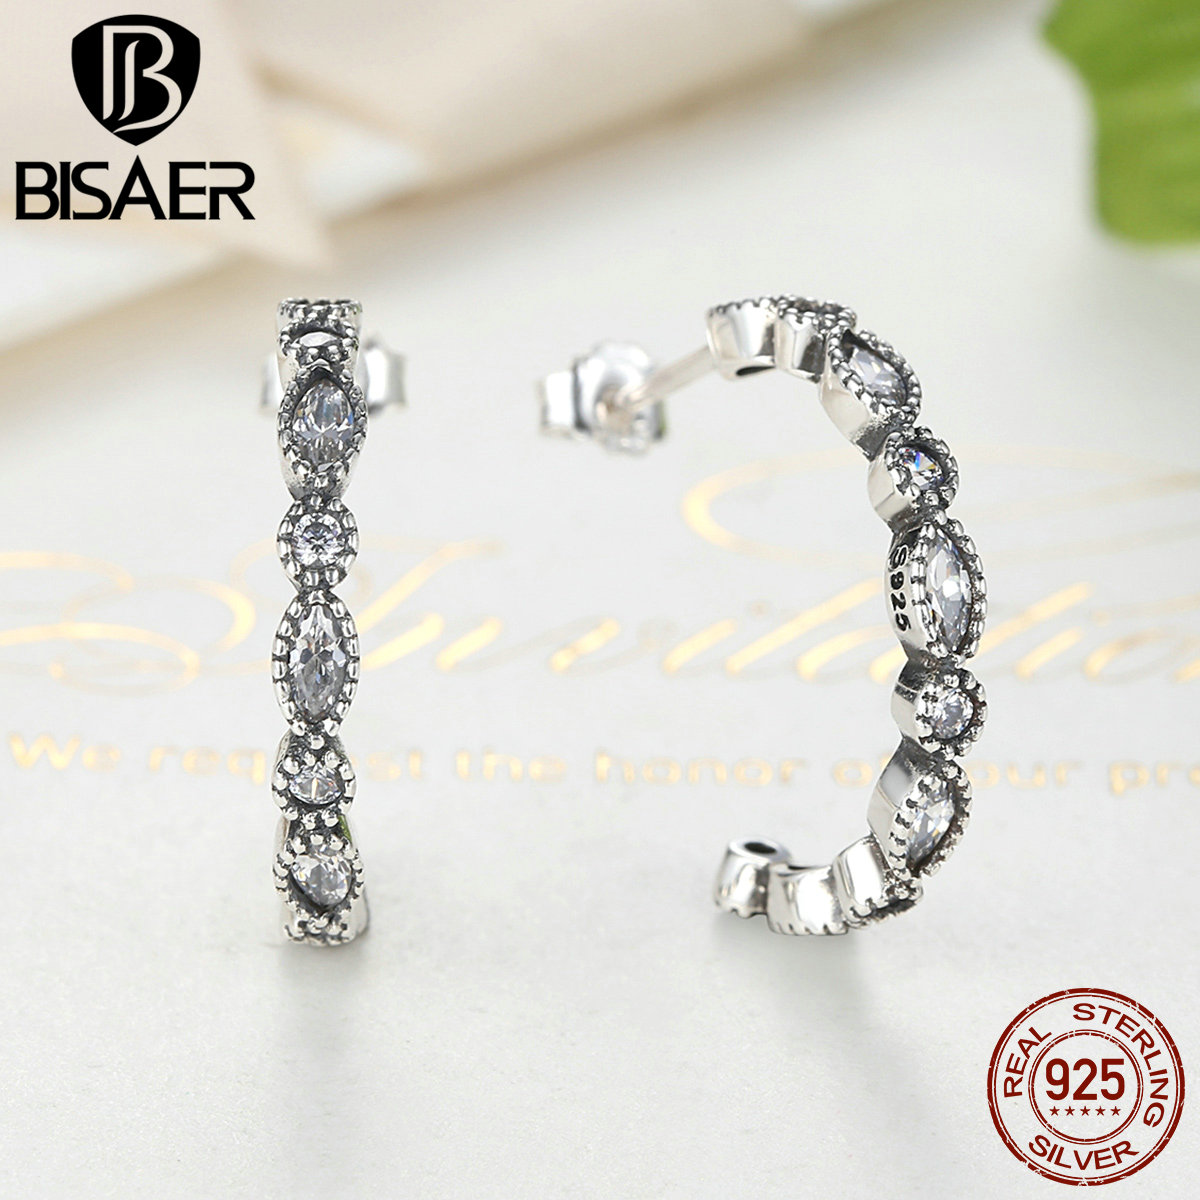 BISAER Real 925 Sterling Silver Simple Geometric Stud Earrings for Women Brincos Fashion Earrings Jewelry 2018 WEUS486